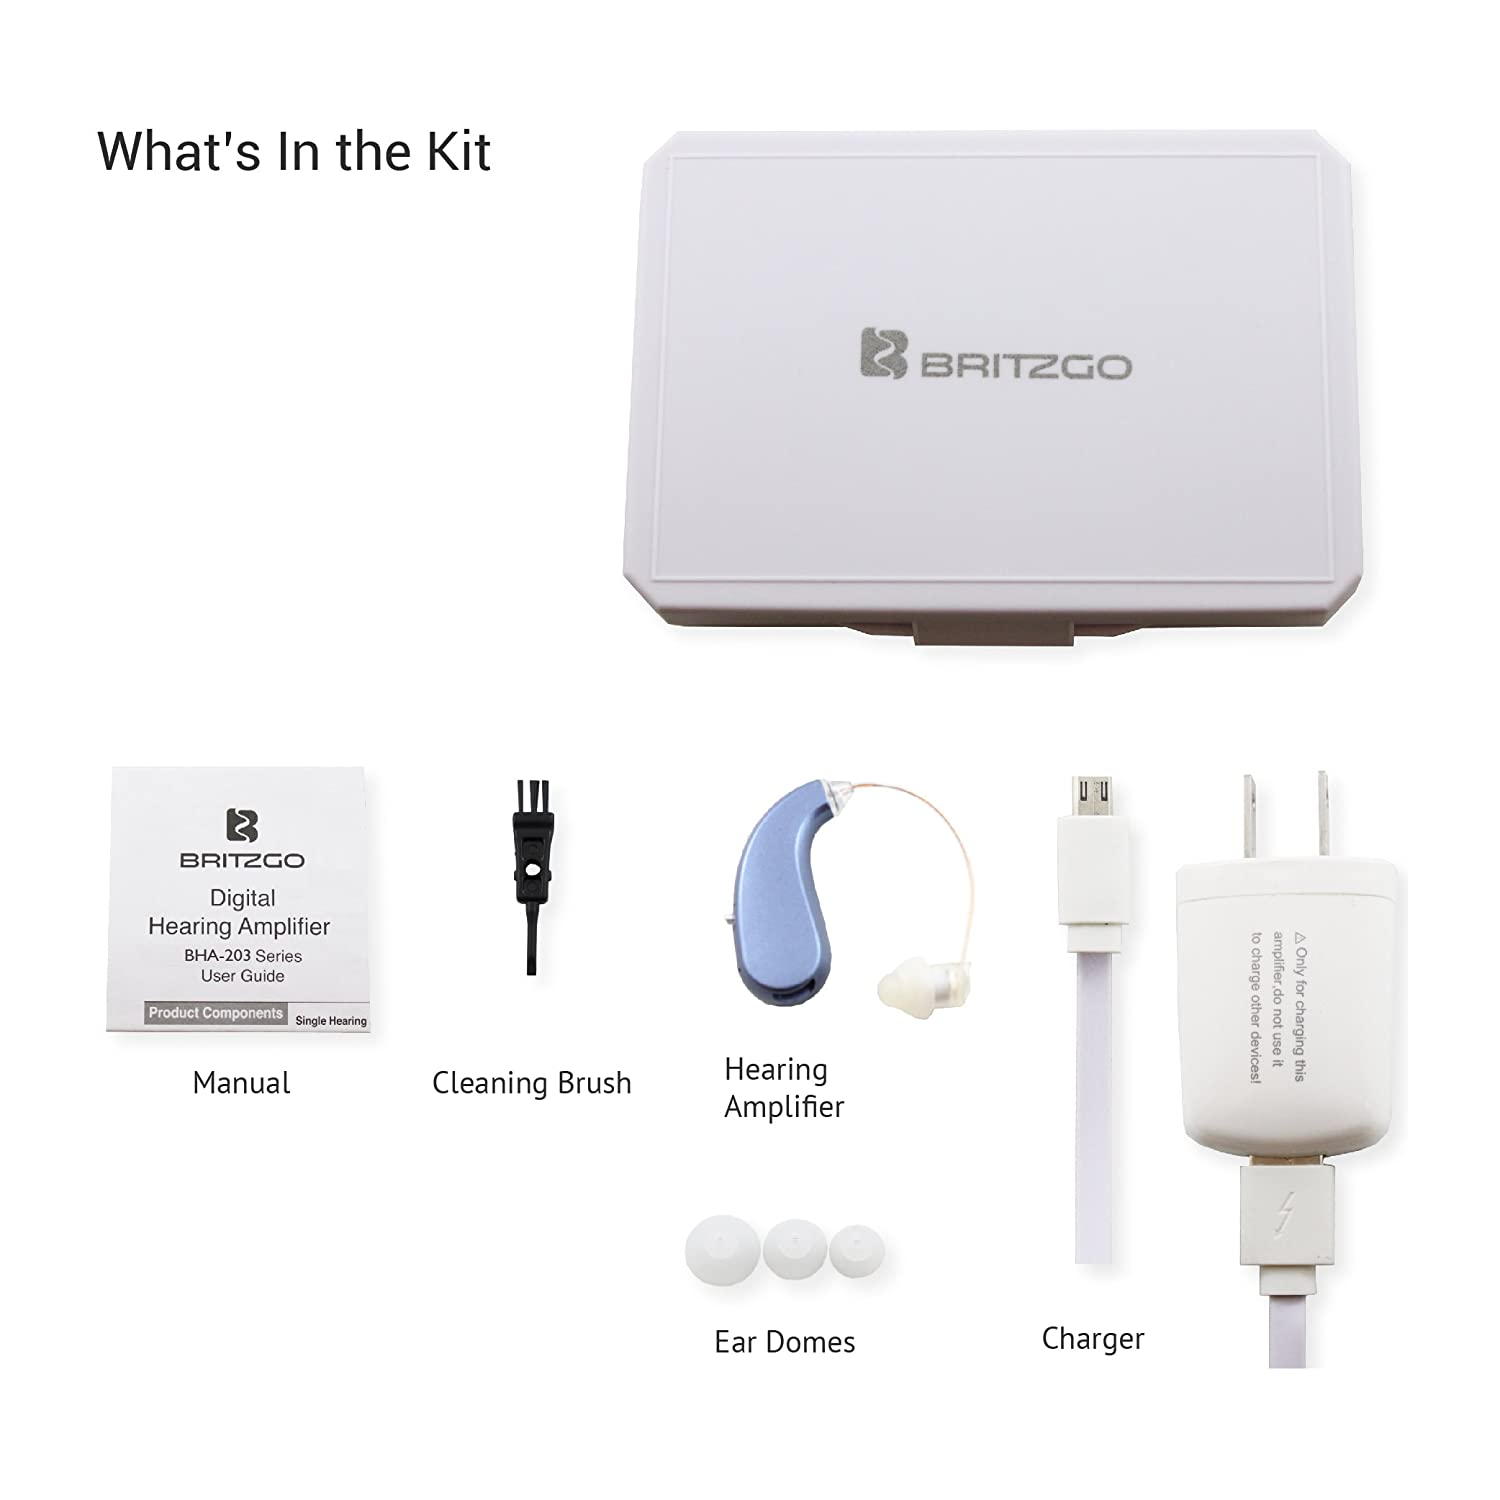 Britzgo Entry Level Rechargable Digital Hearing Living Aids Amplifiers Accessories Amplifier Bha 203 Blue 8 Ounce Health Personal Care